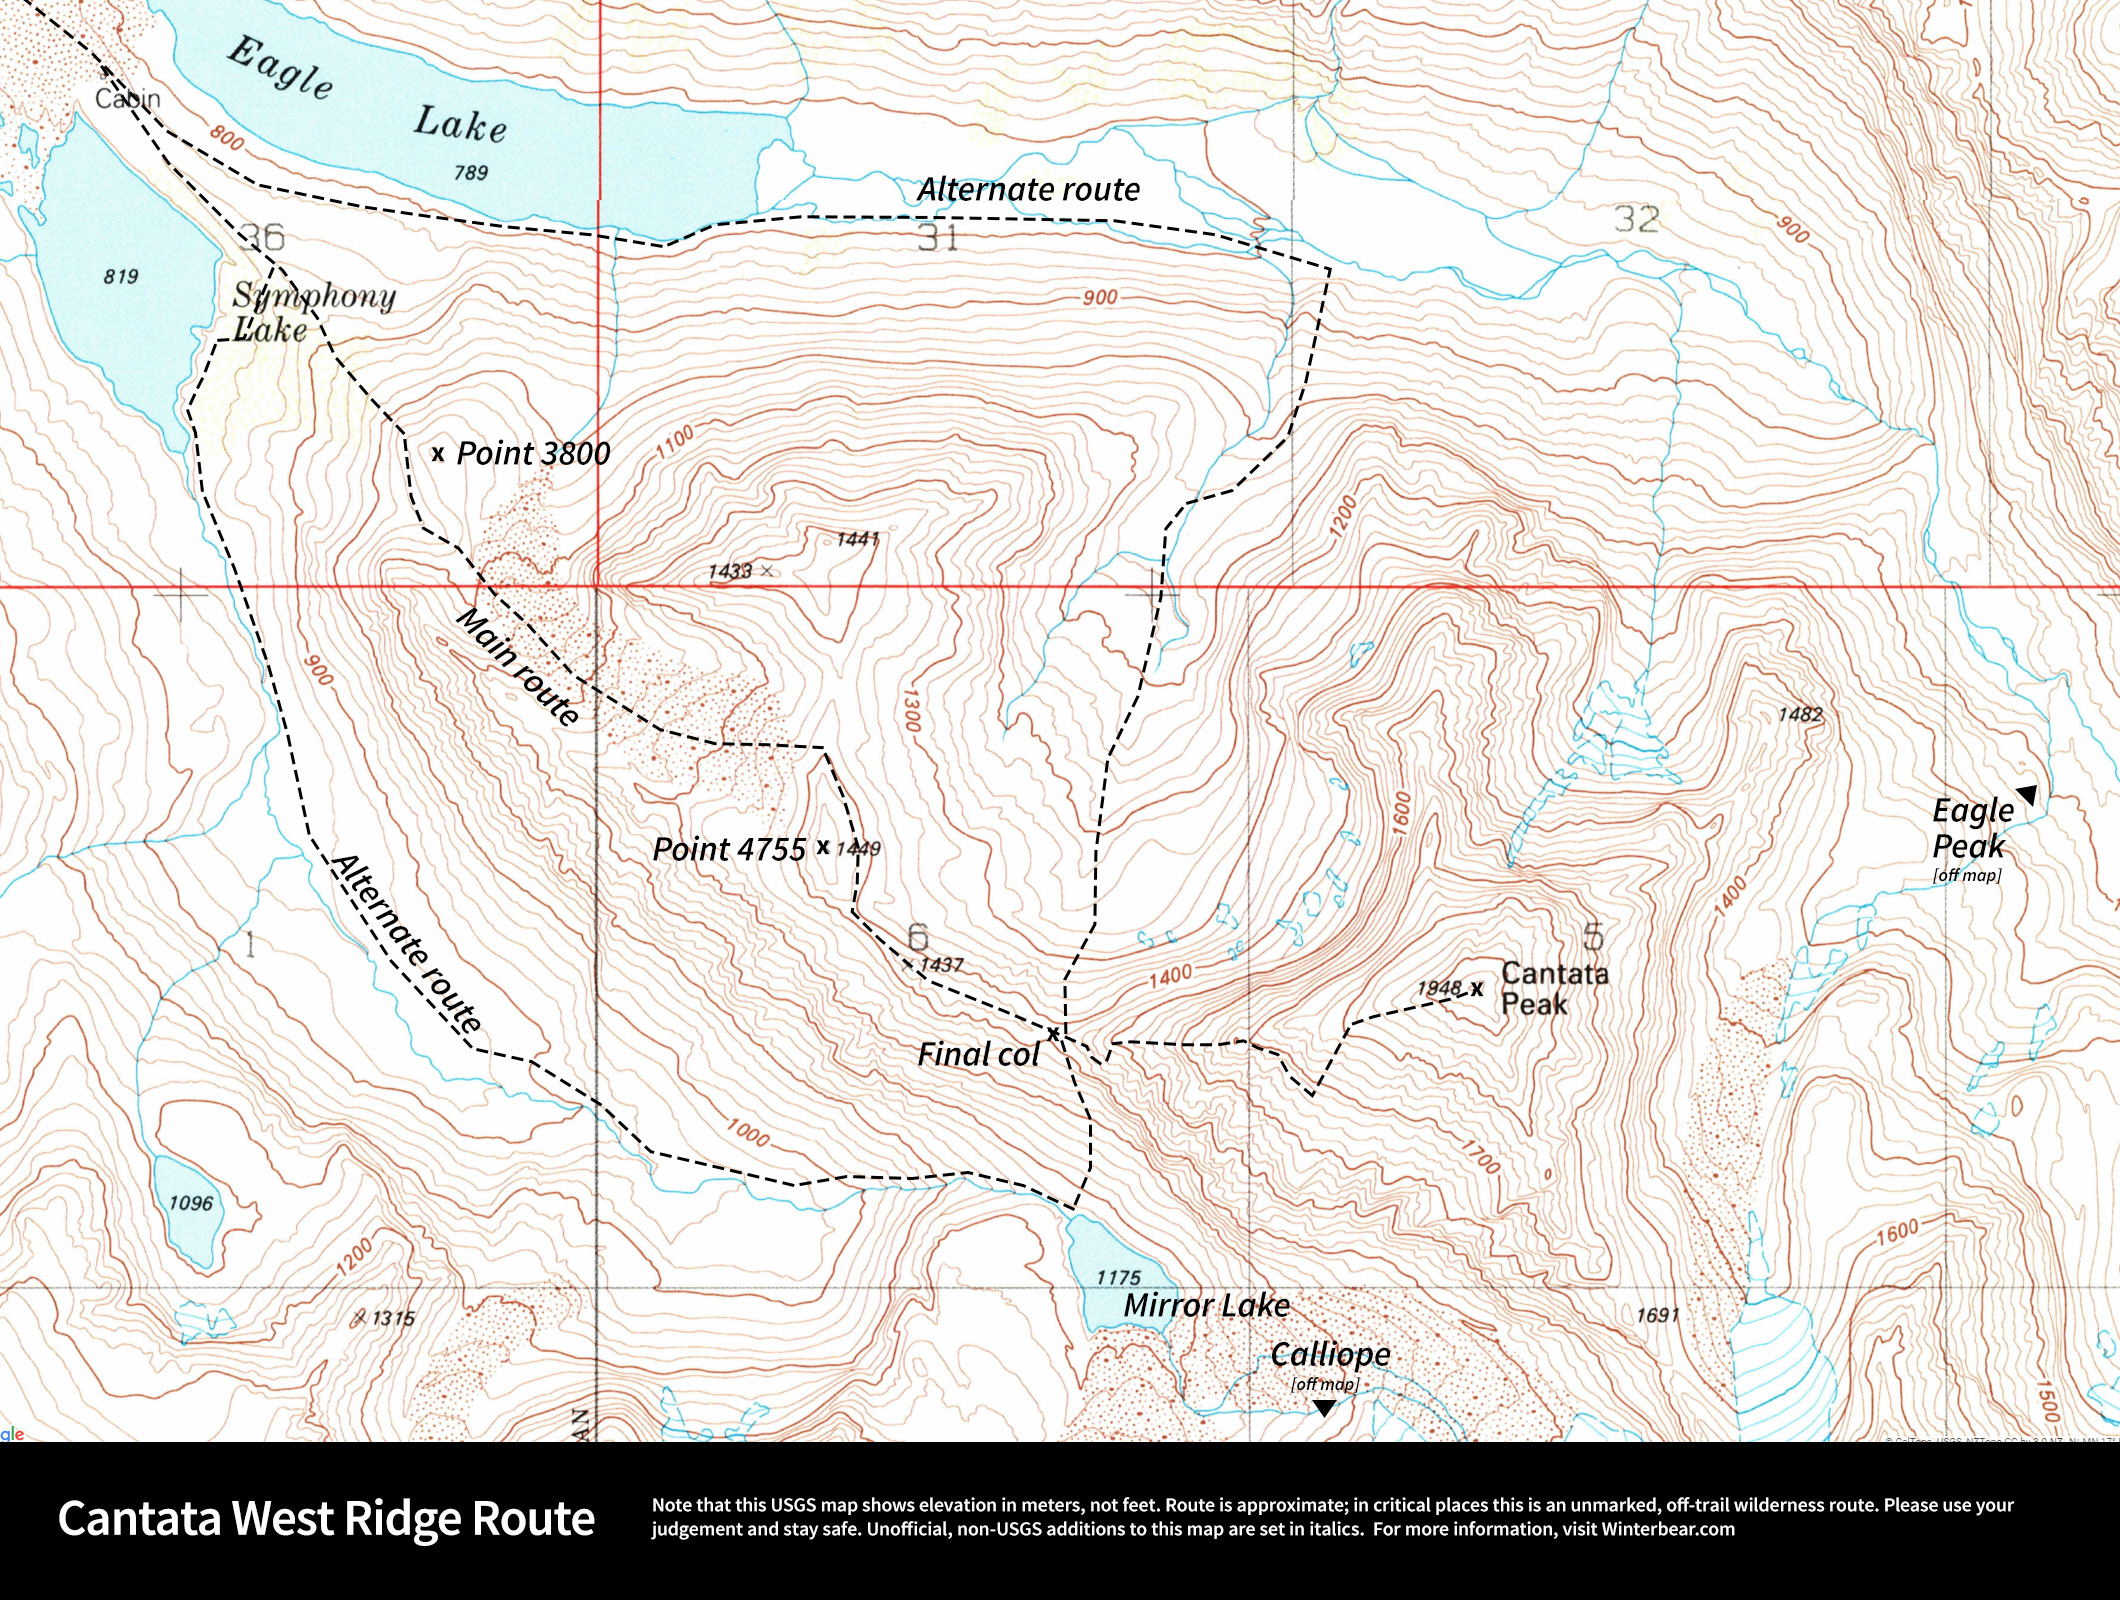 Annotated USGS map of the west ridge route up Cantata